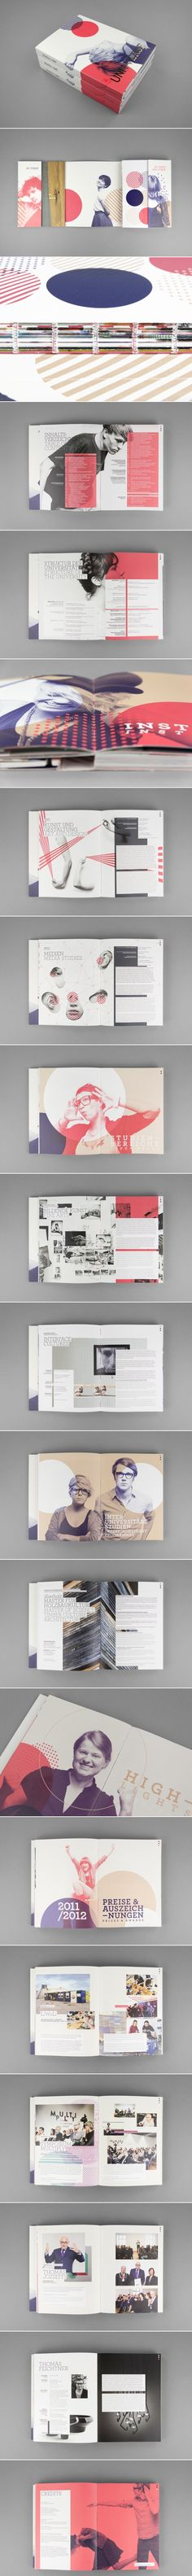 63 New Ideas Design Editorial Magazine Grid Layouts Web Design, Graphic Design Layouts, Book Design Layout, Print Layout, Graphic Design Inspiration, Design Ideas, Brochure Layout, Brochure Design, Branding Design